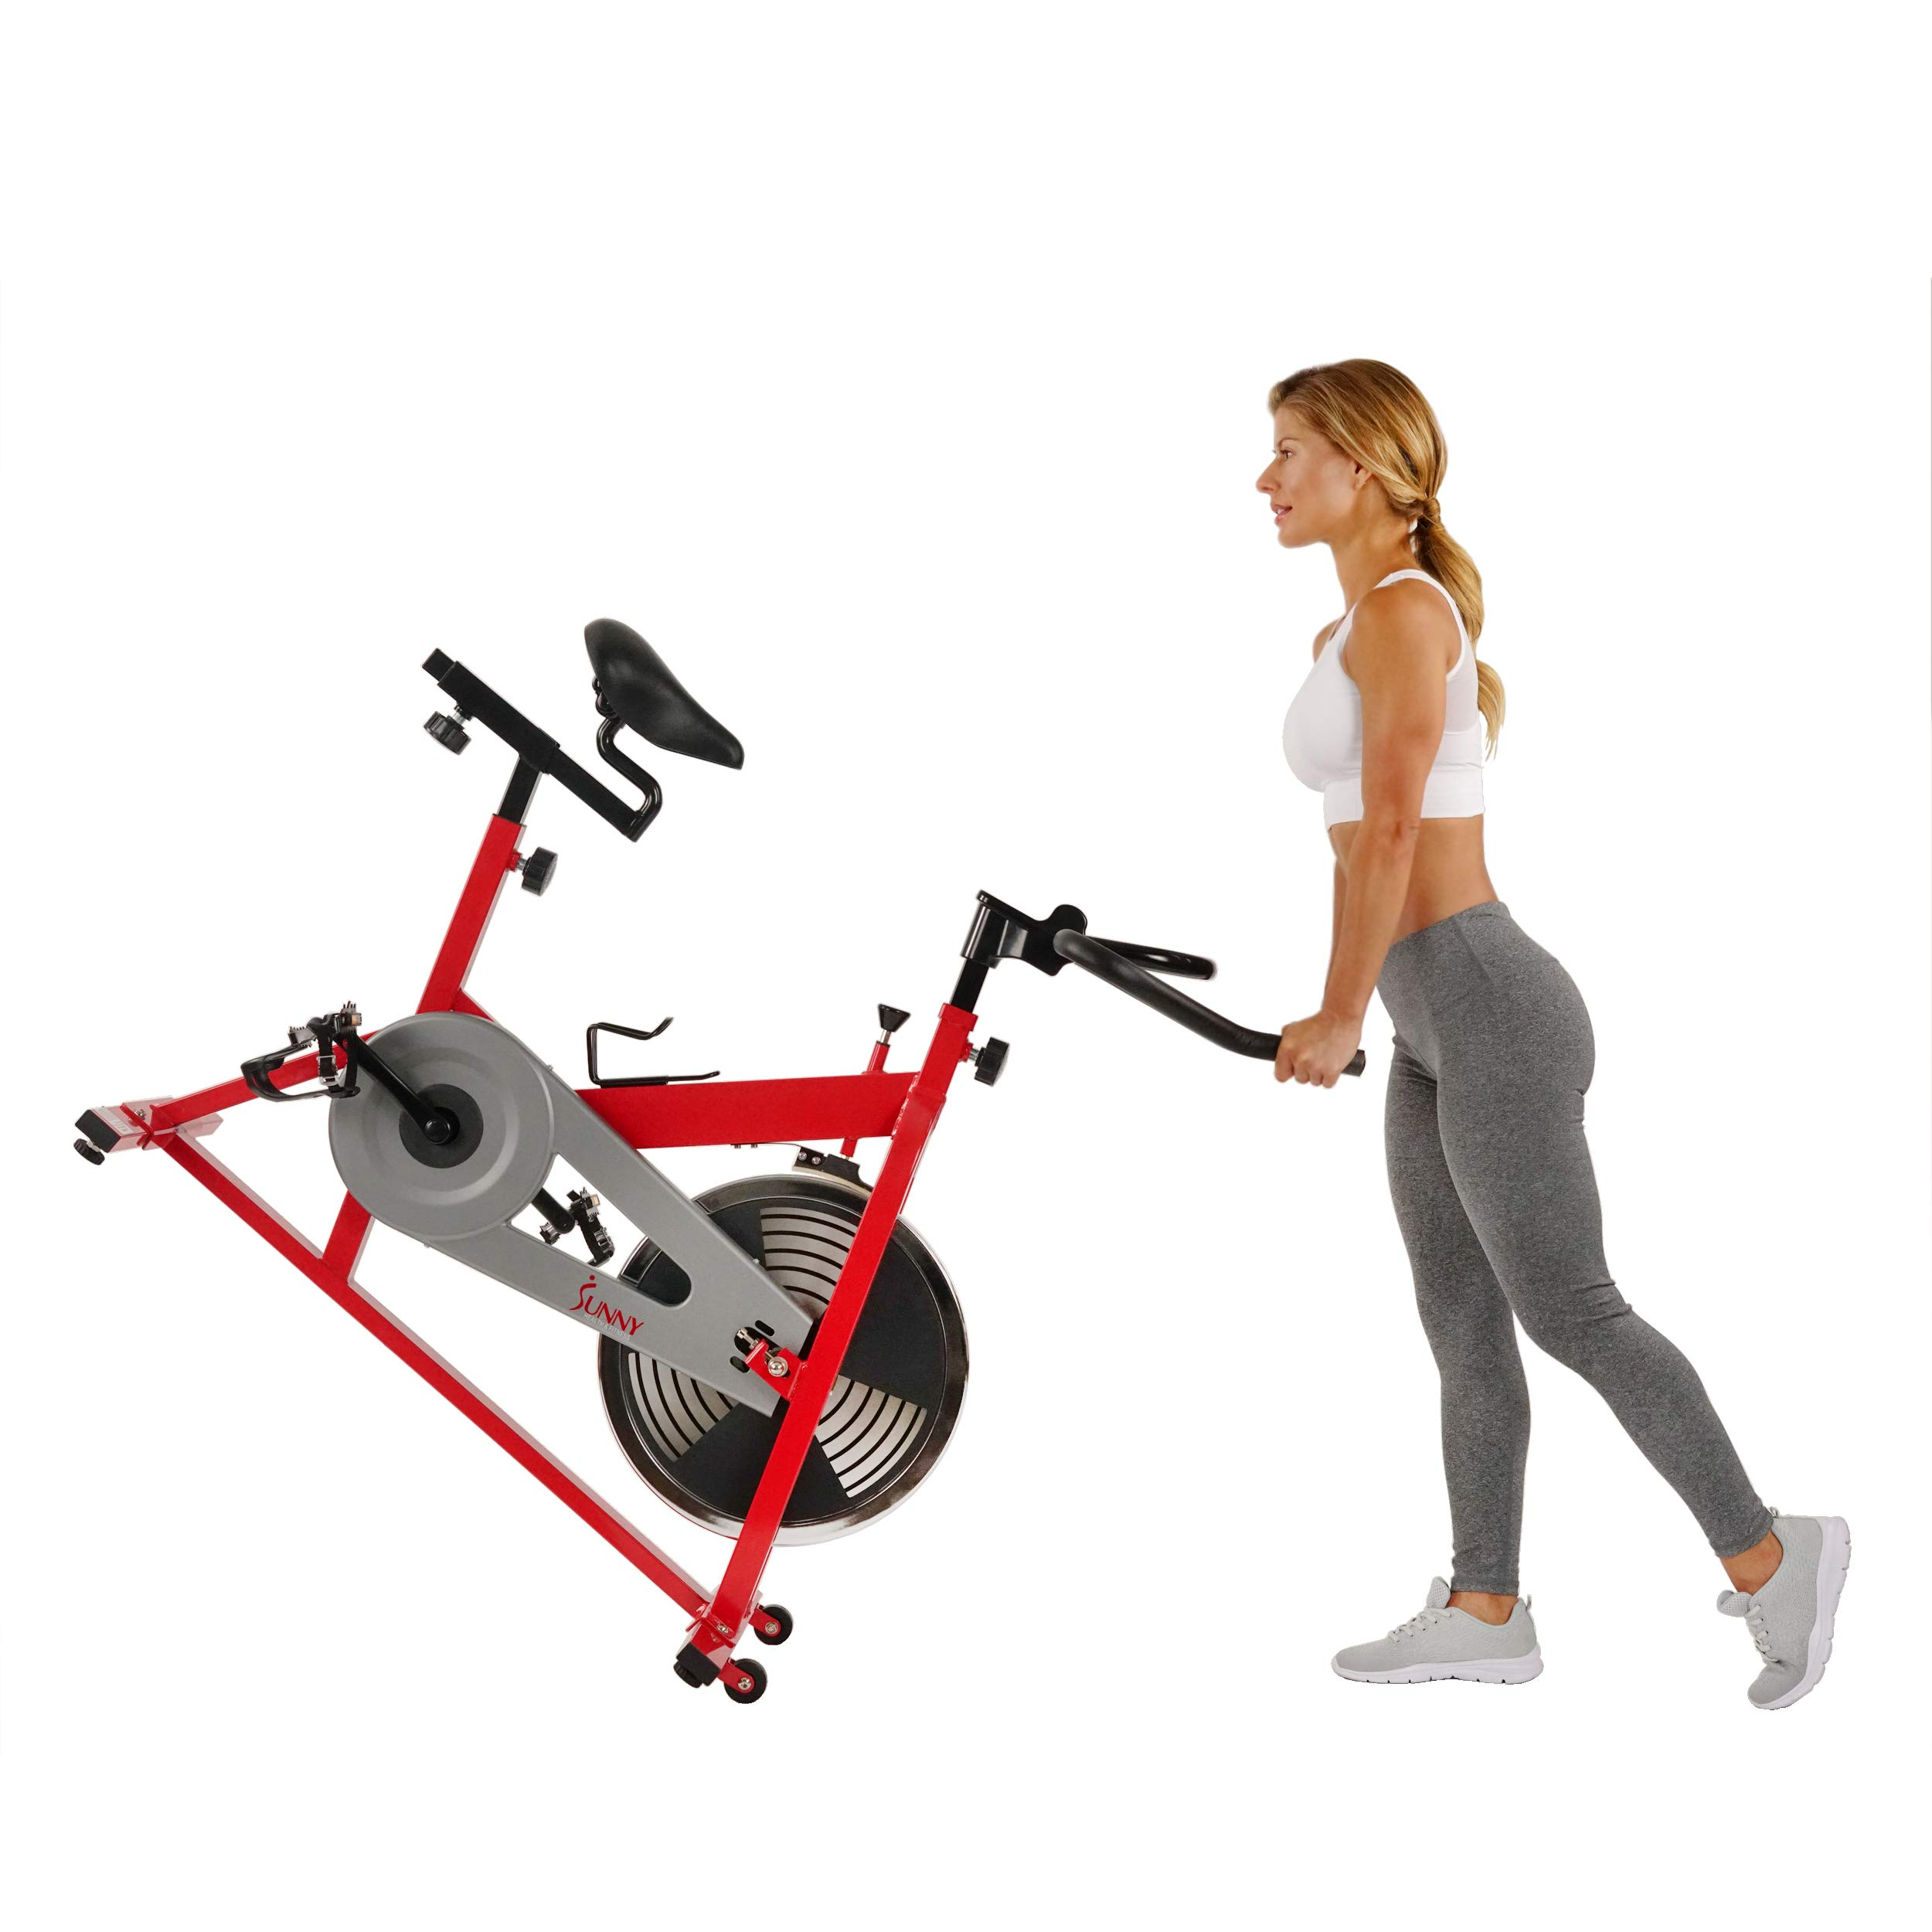 Sunny Health & Fitness SF-B1001 Indoor Cycling Bike, Red by Sunny Health & Fitness (Image #13)